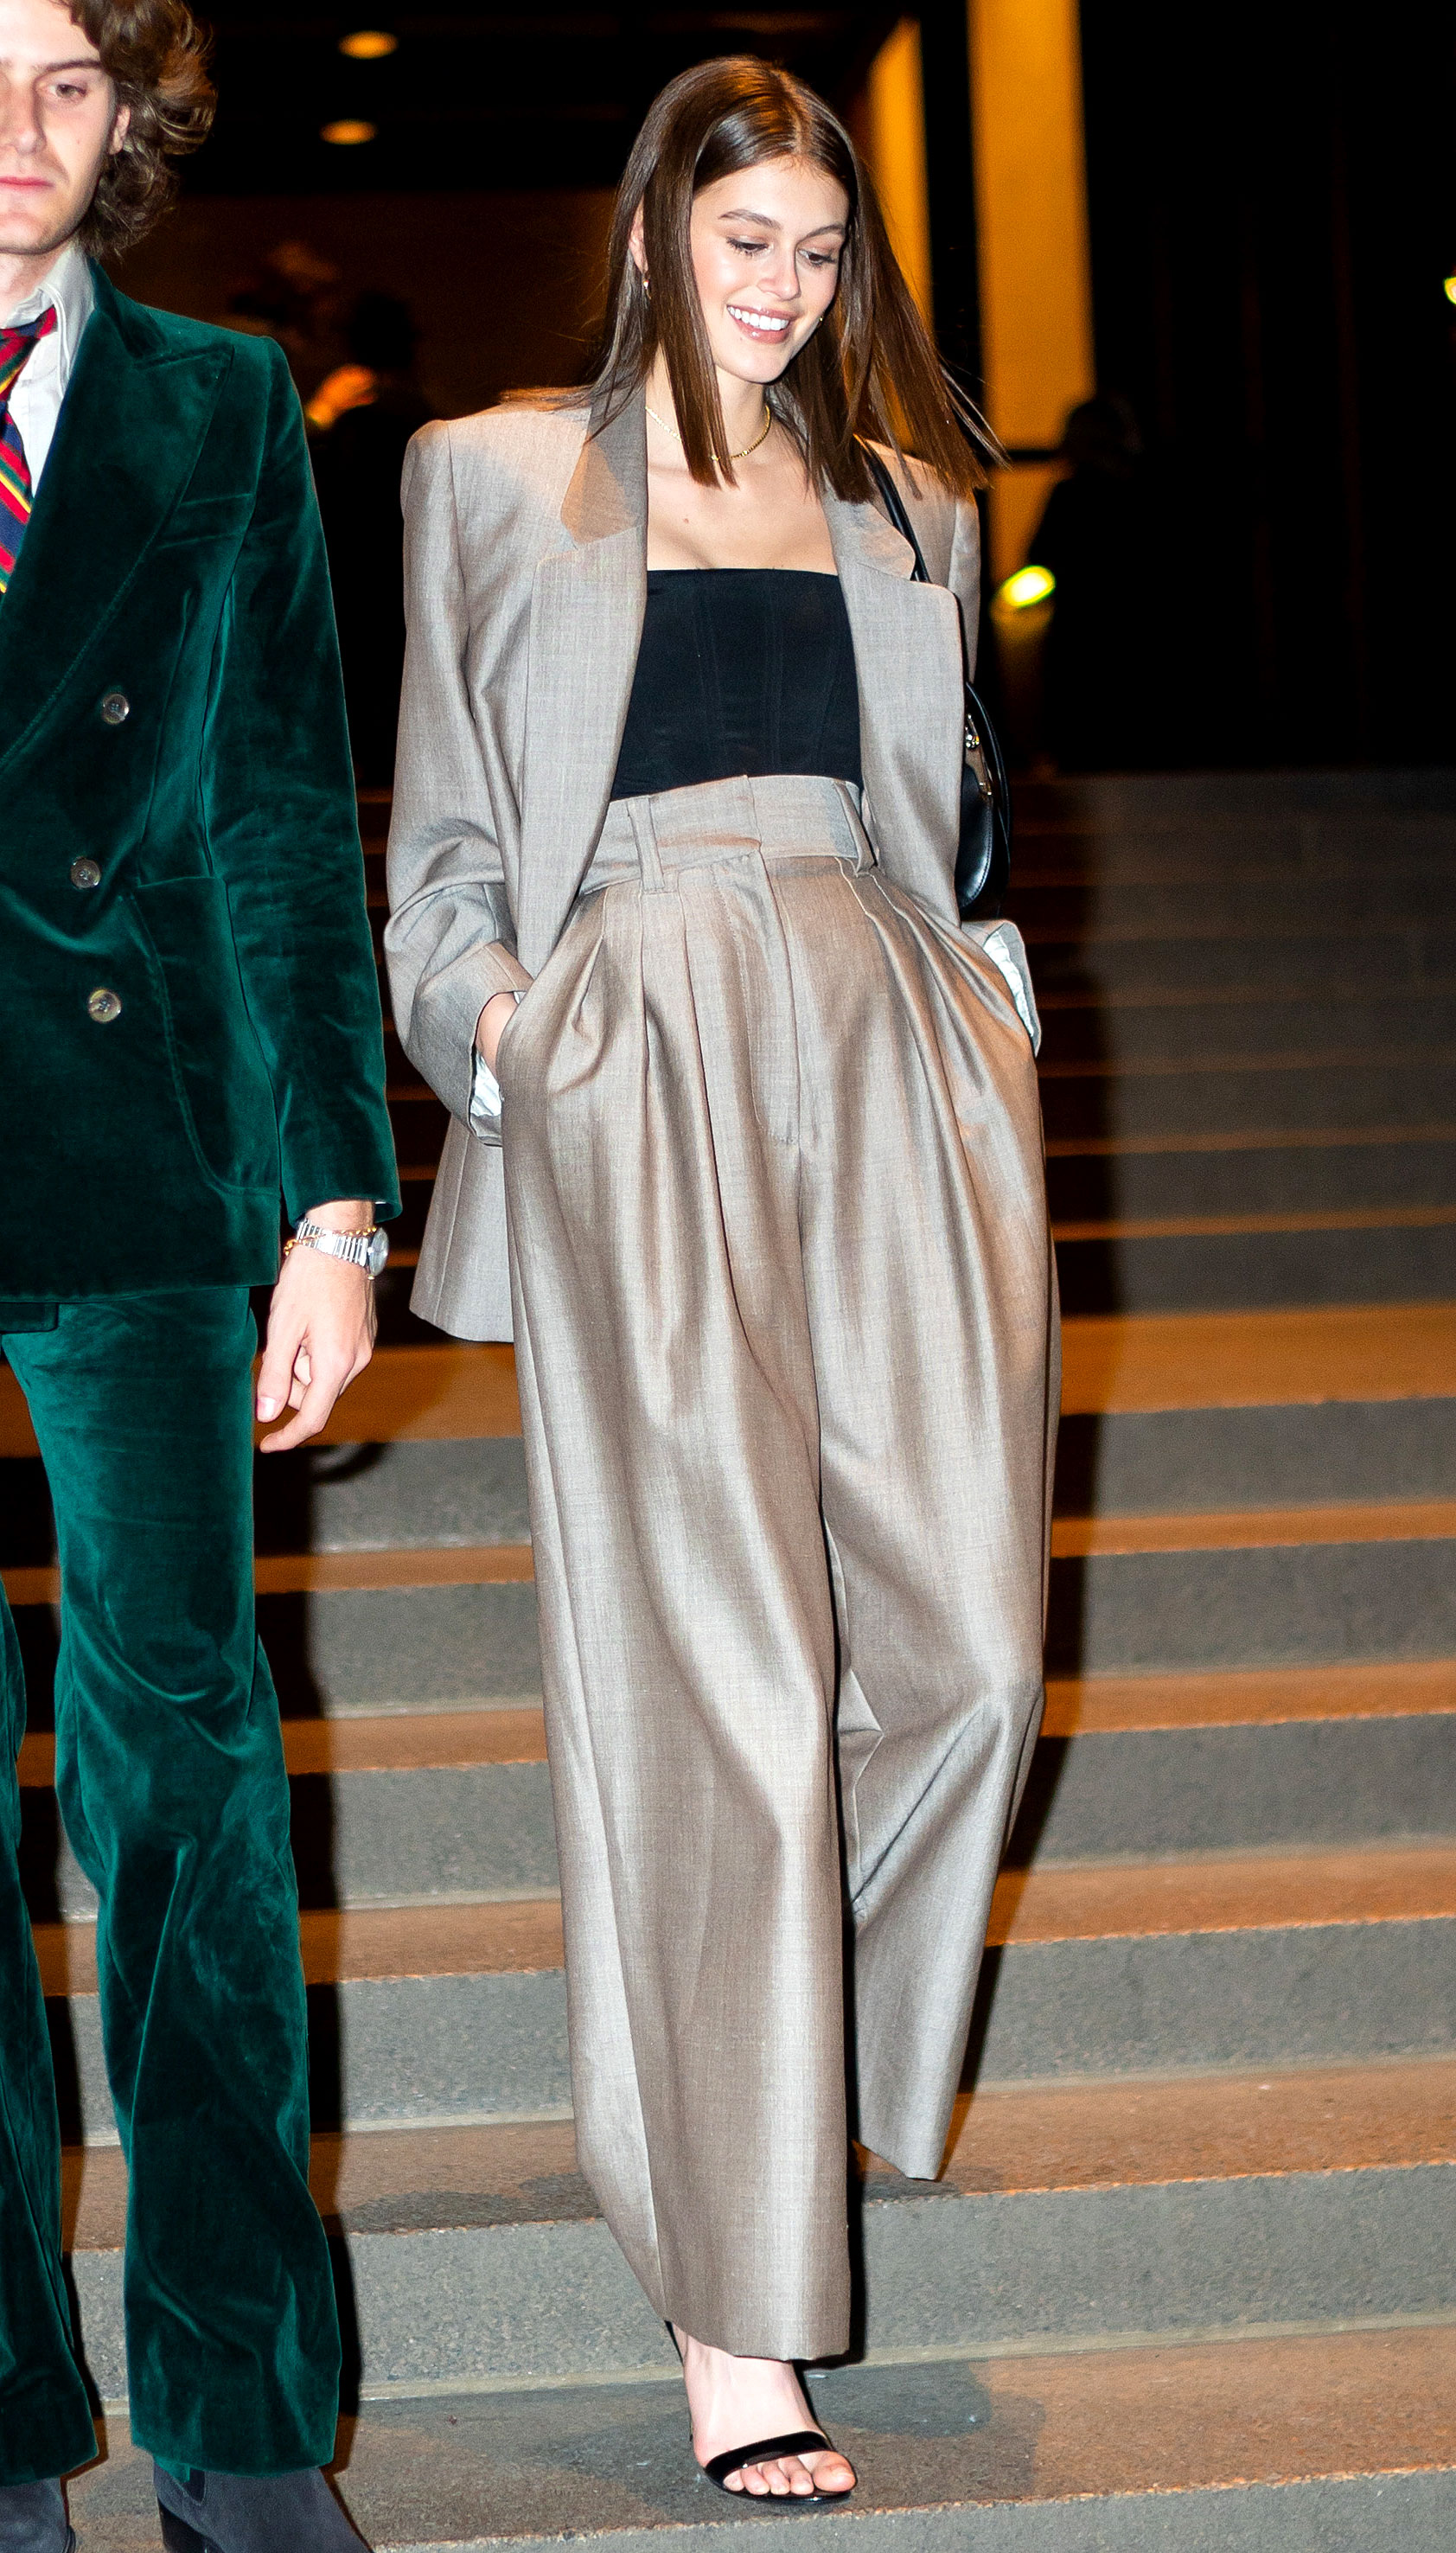 Marc-Jacob-and-Char-DeFrancesco-wedding-reception Kaia Gerber - Gerber looked gorgeous in a classic pantsuit.